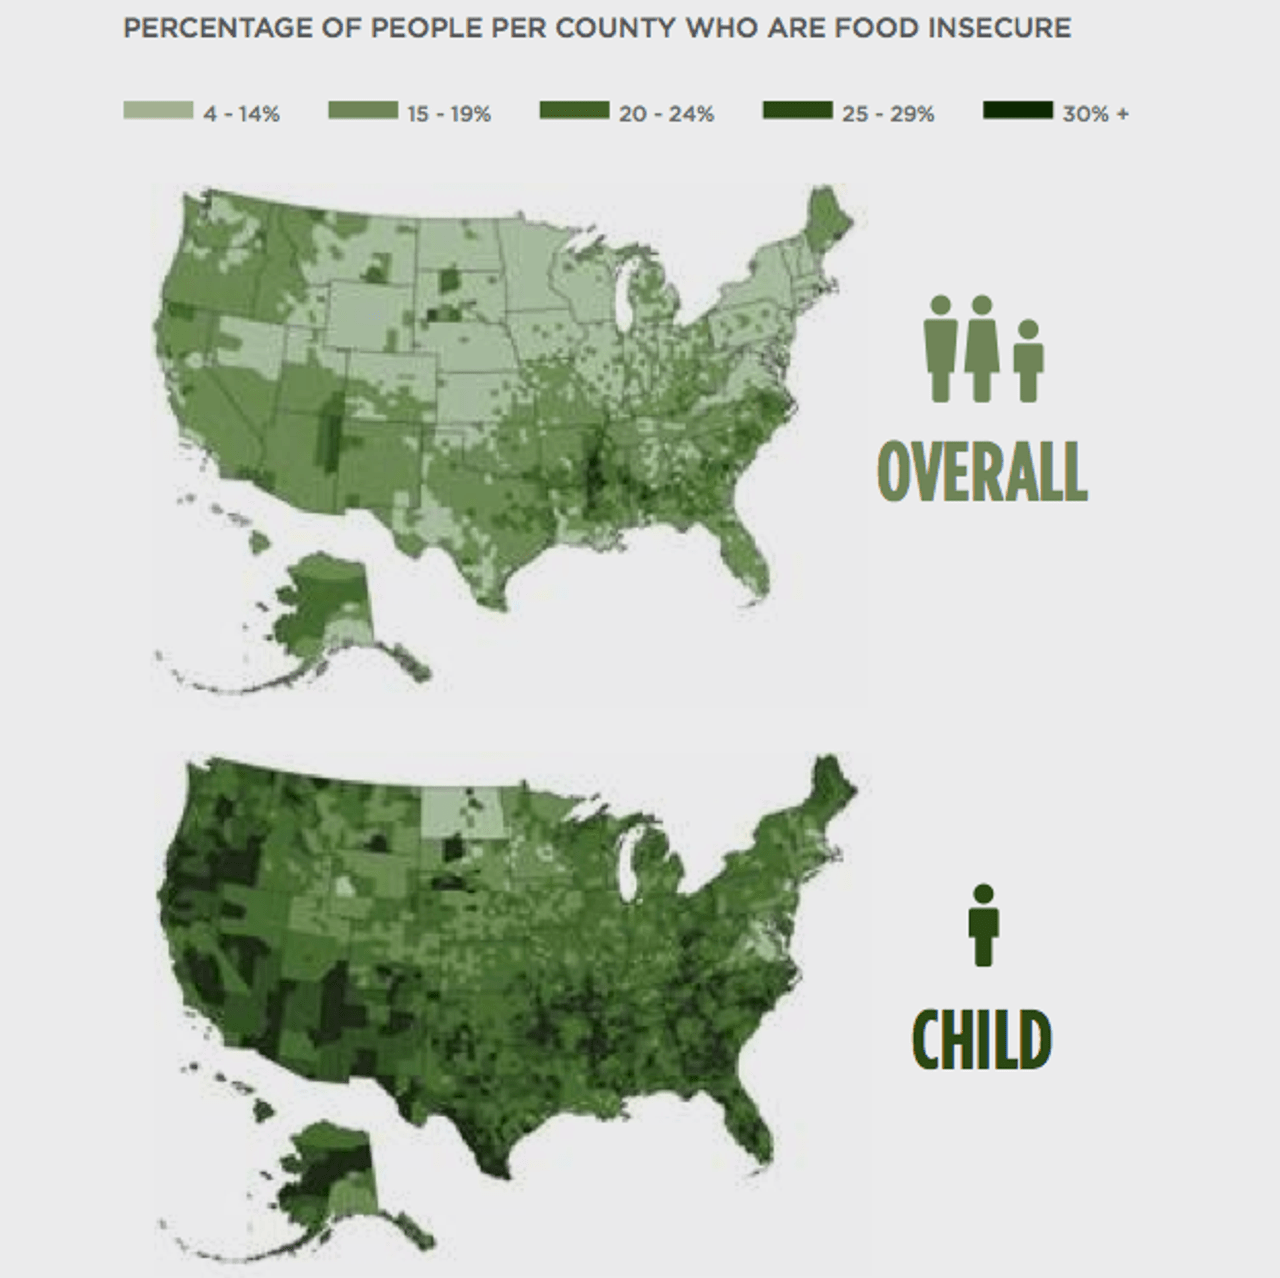 Food insecurity in the USA